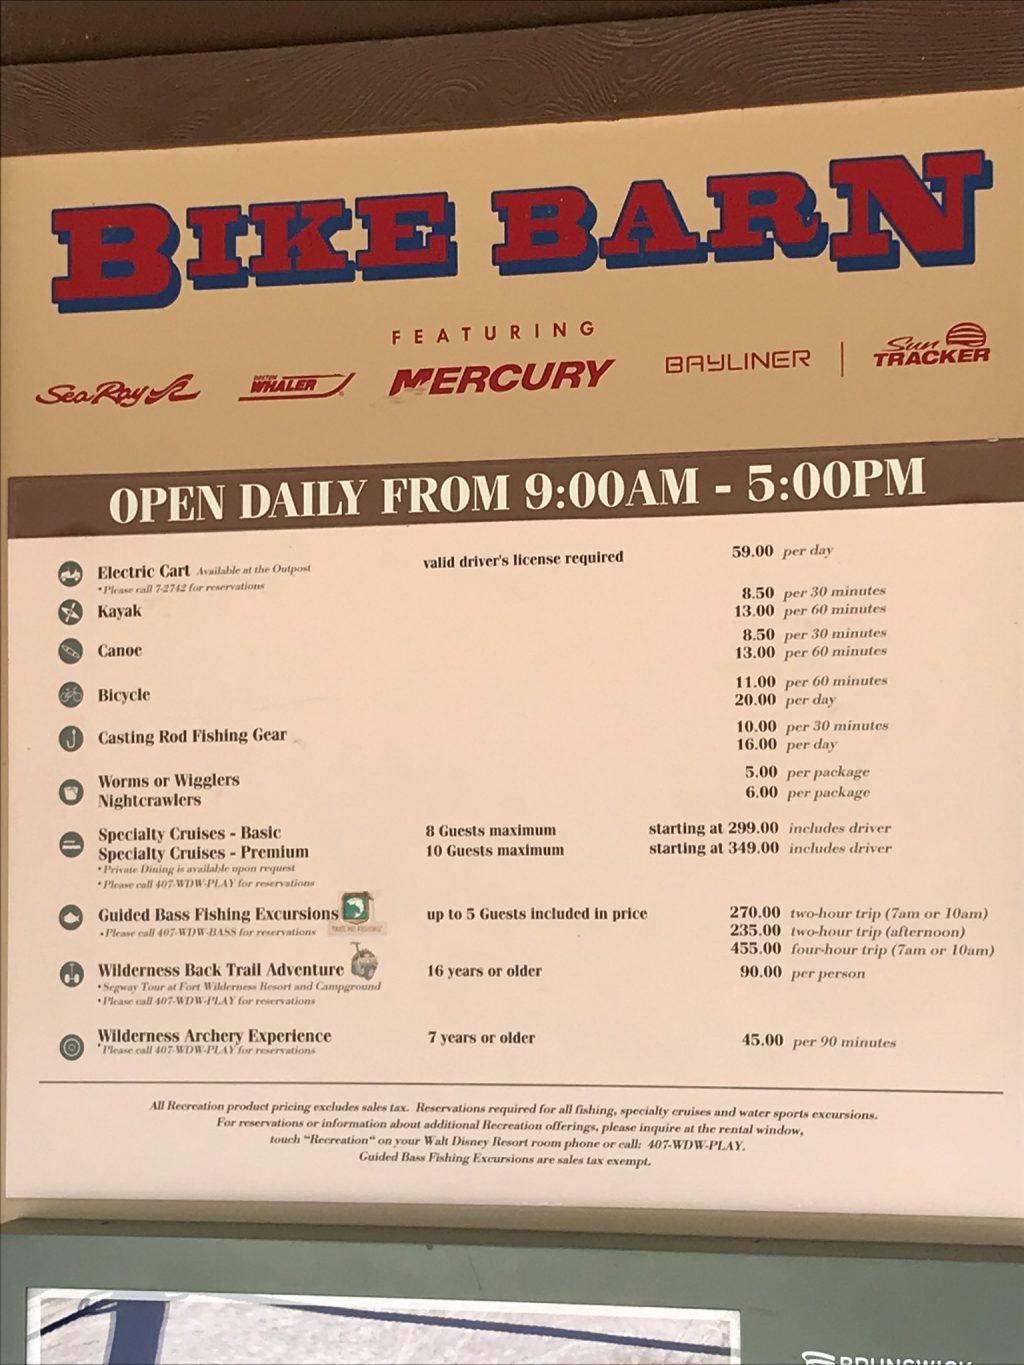 Bike Barn sign with activities and hours